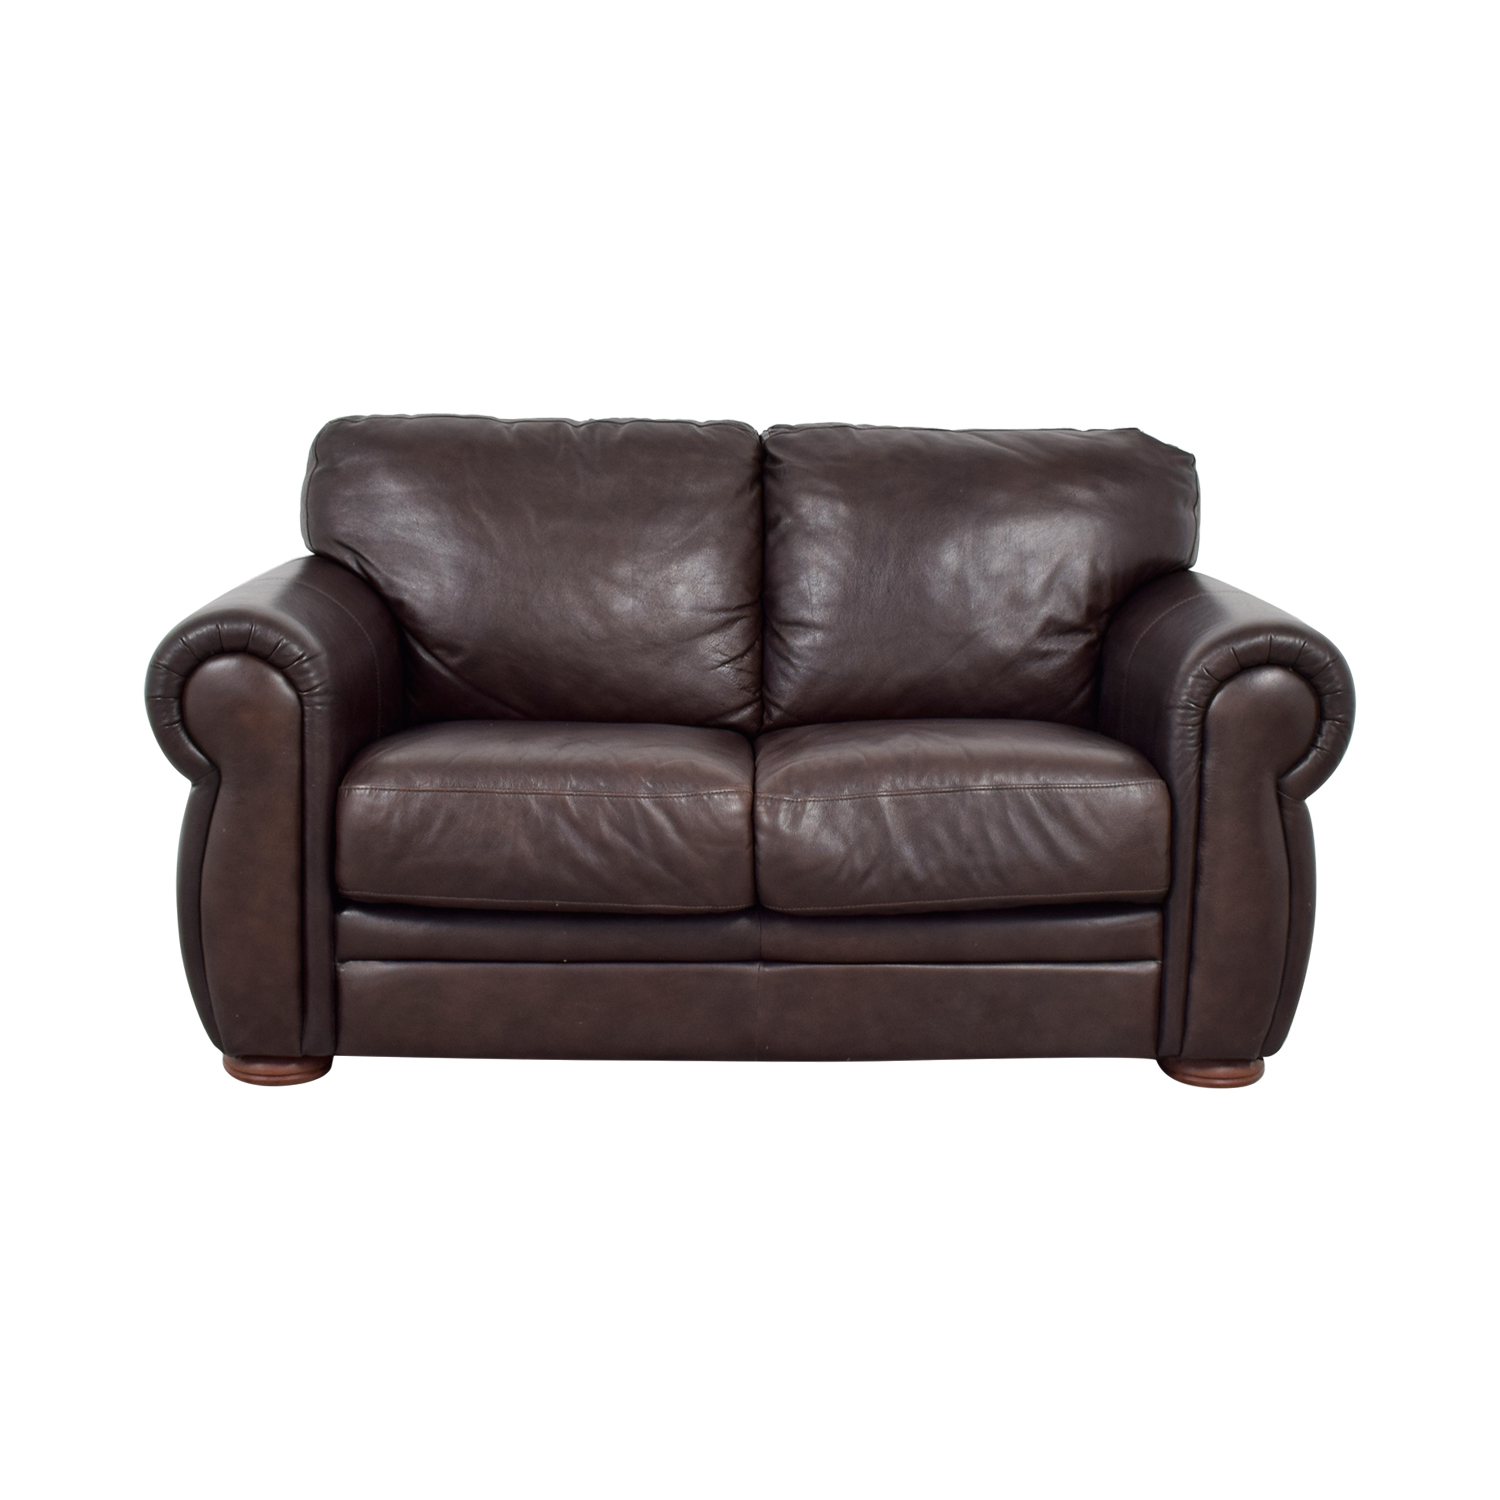 Raymour & Flanigan Raymour & Flanigan Brown Leather Two-Cushion Sofa coupon